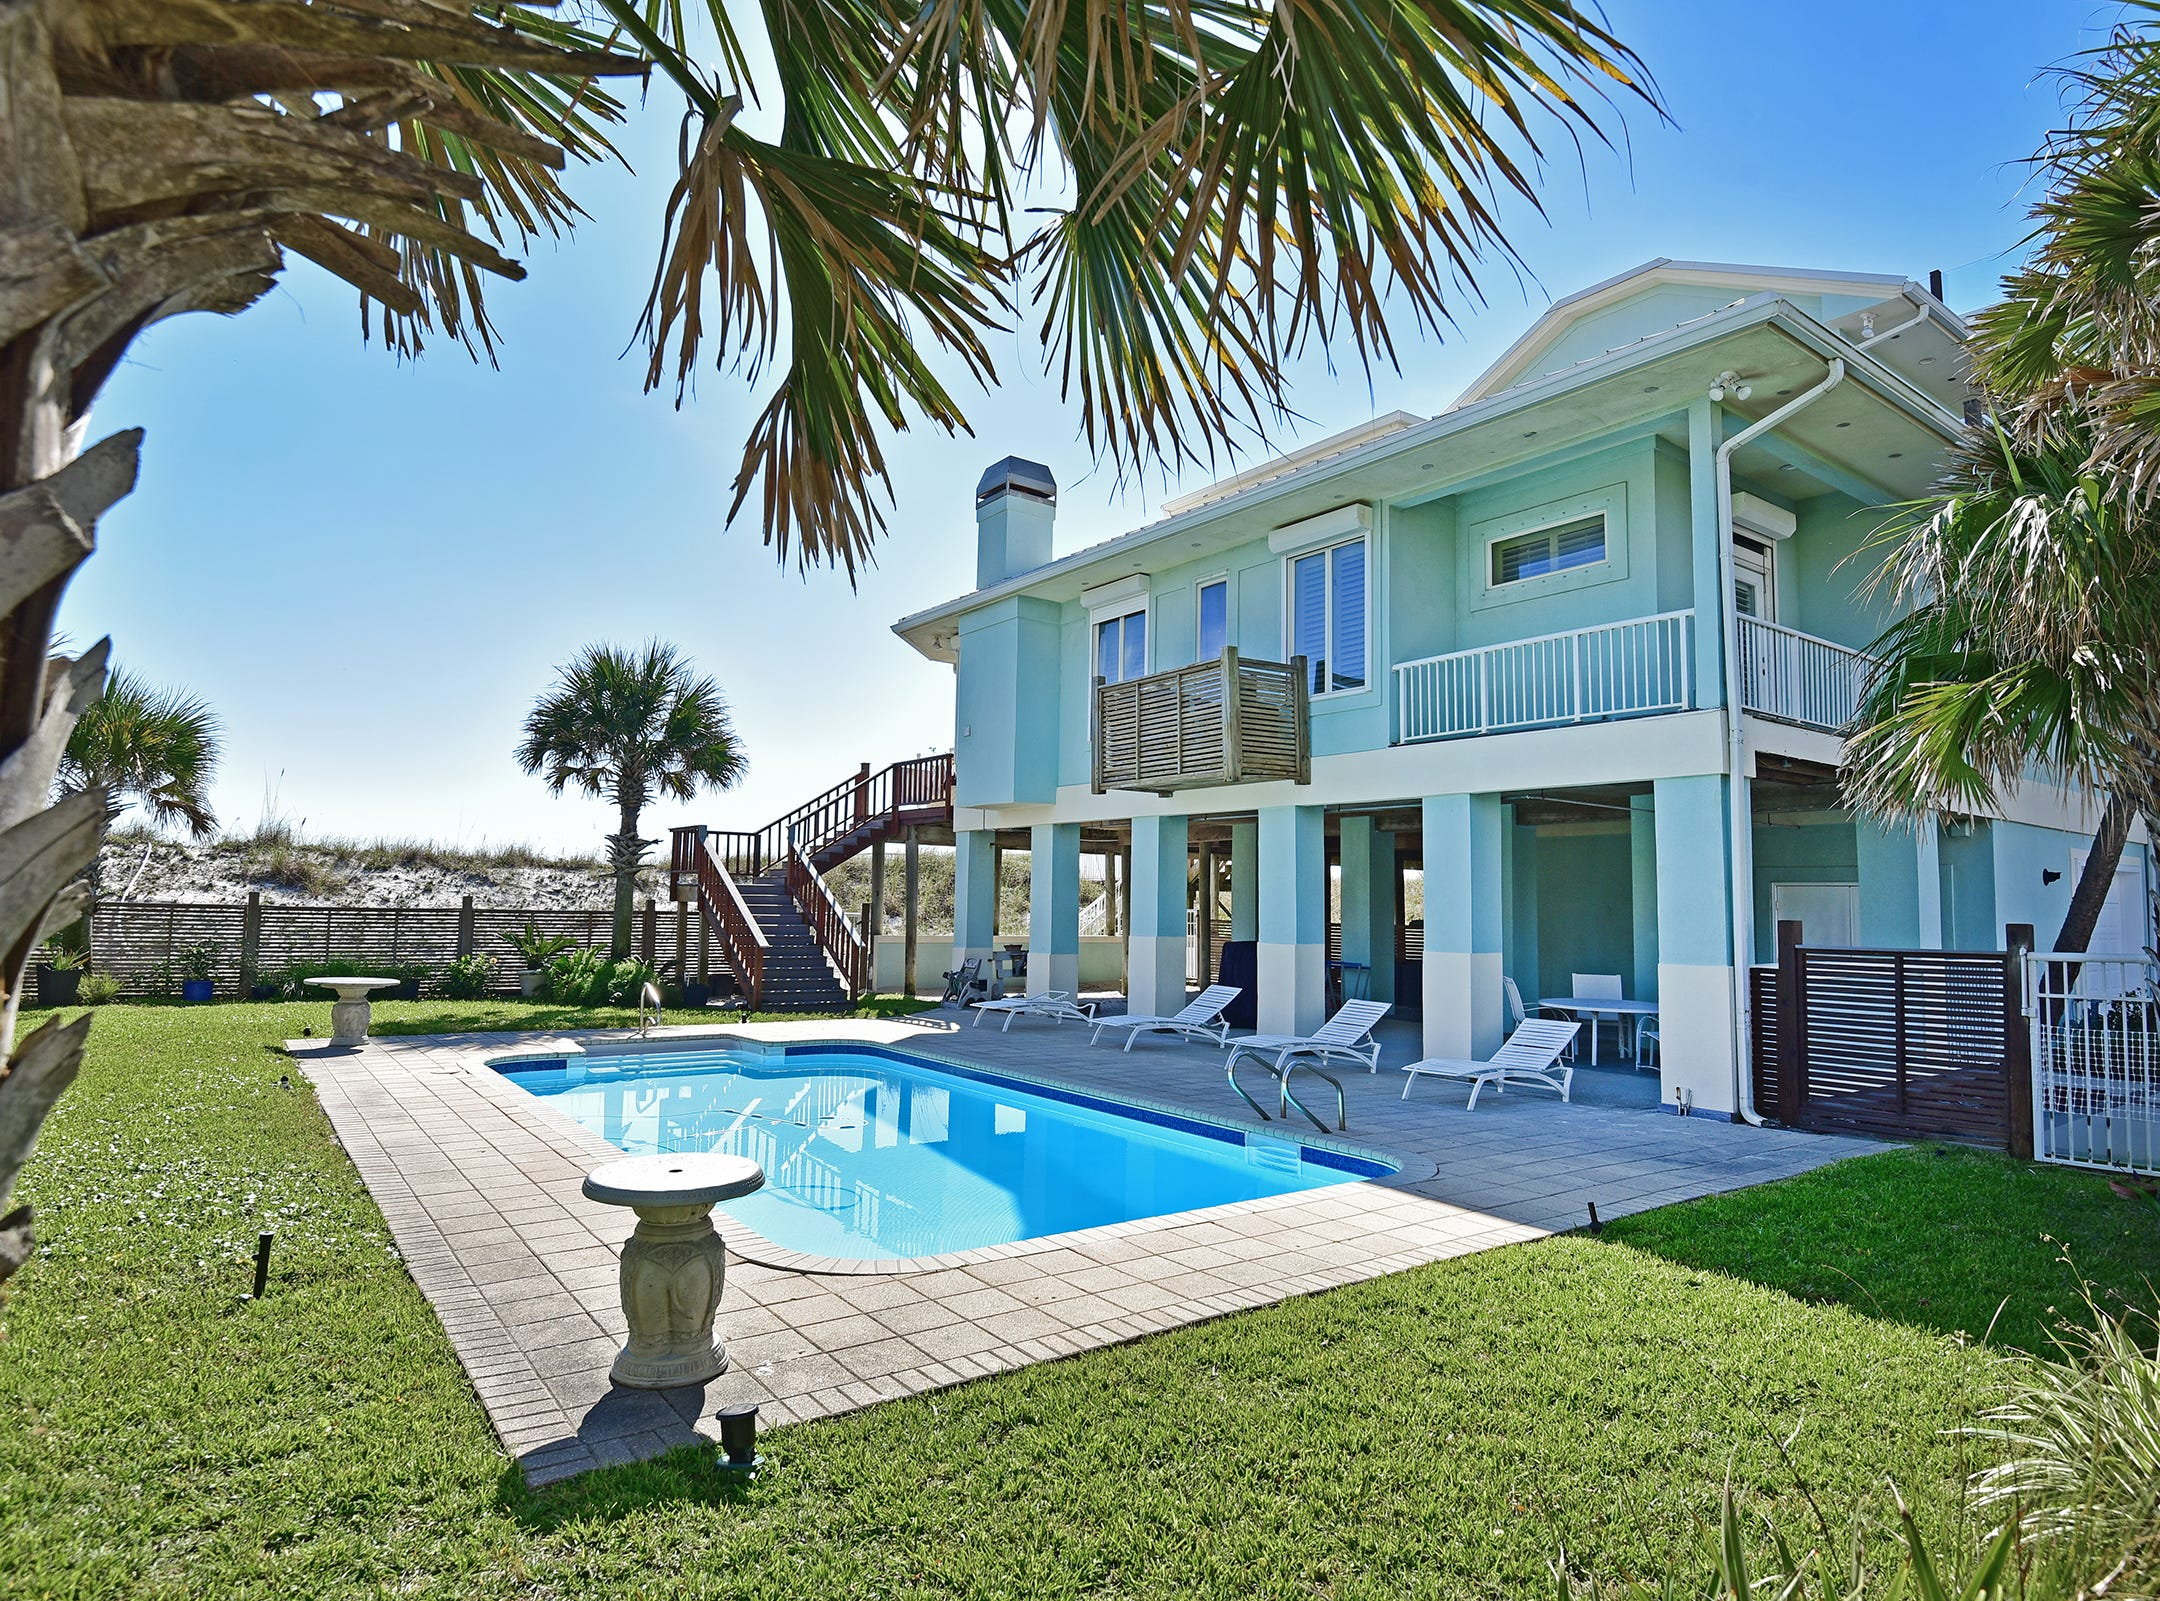 28 Calle HermosaThe Gulf-front pool.